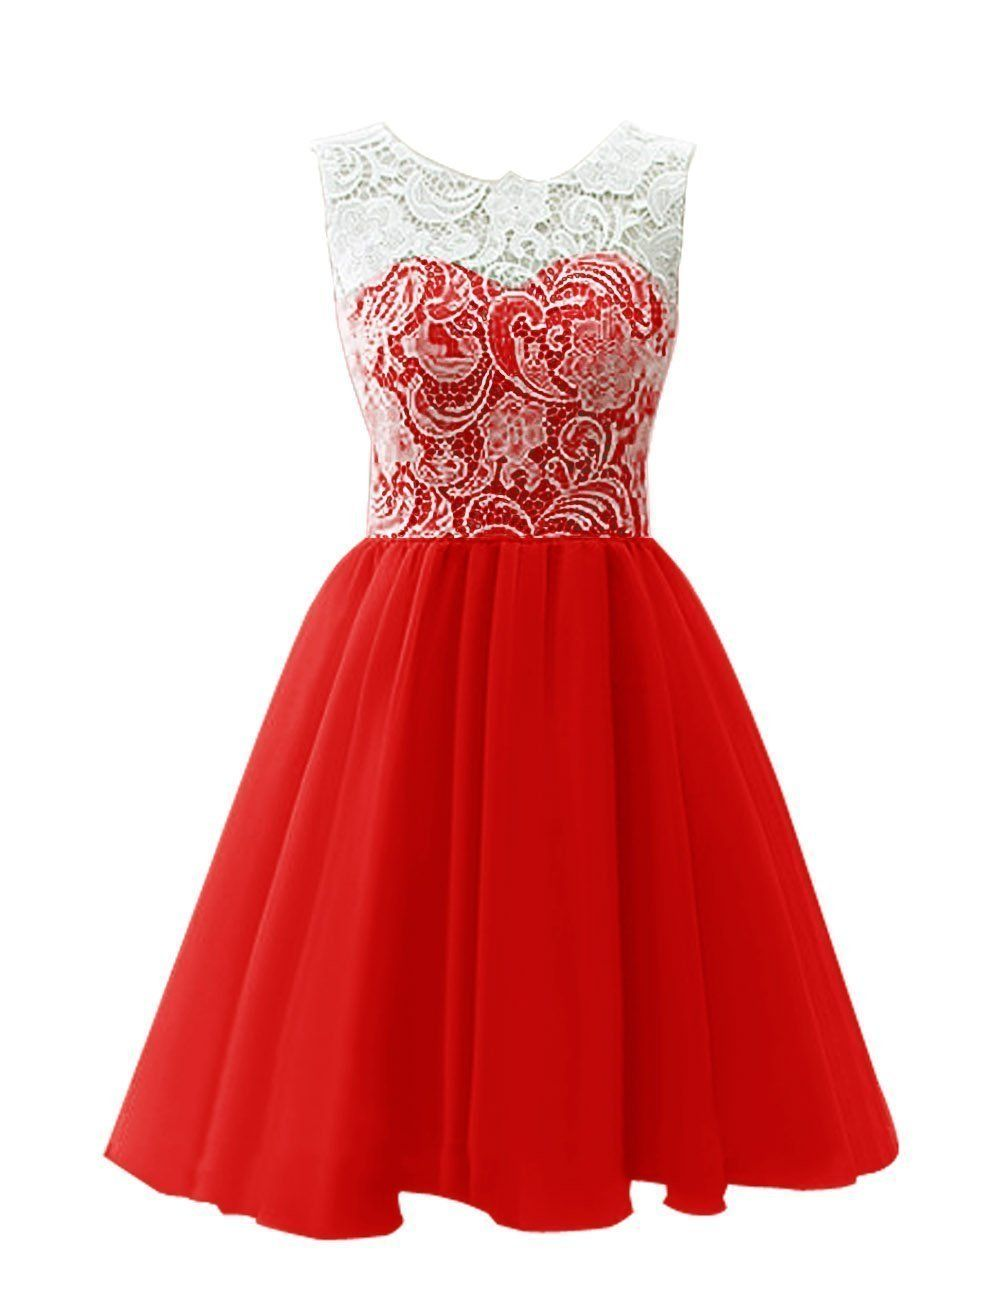 Micbridal flower girl adult ball gown lace short prom dress royal